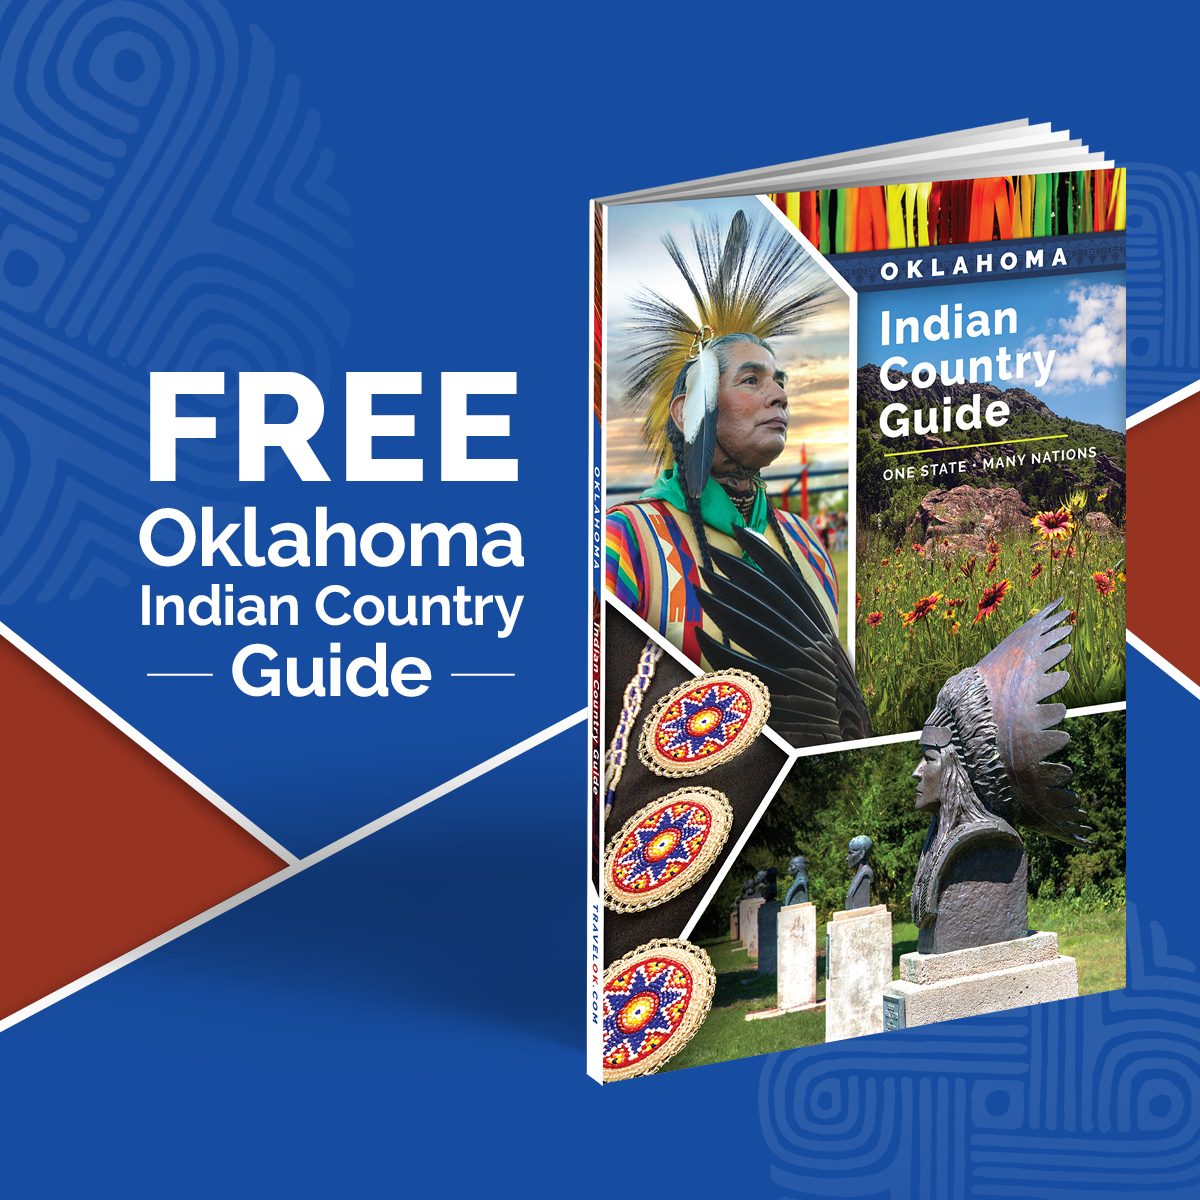 27843 OTRD Fall Foliage Specialty Guides (Programmatic Display 1200x1200) 4 - F